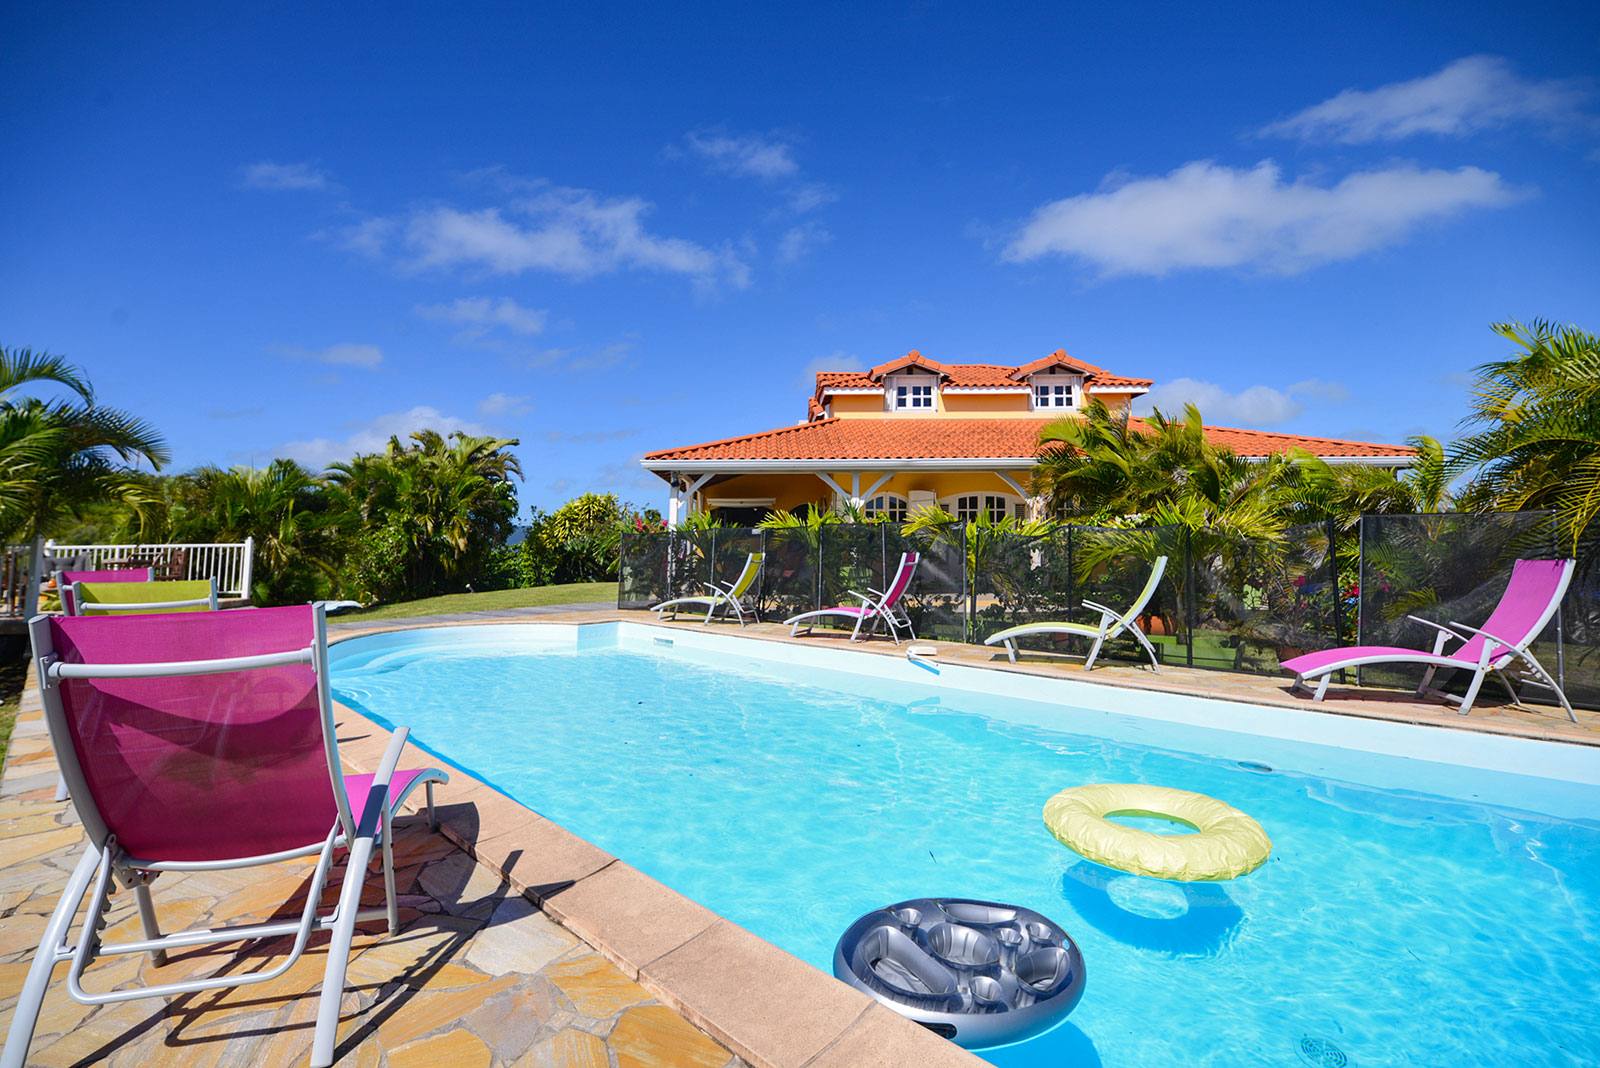 Location villa martinique Kaz arome Sainte Anne